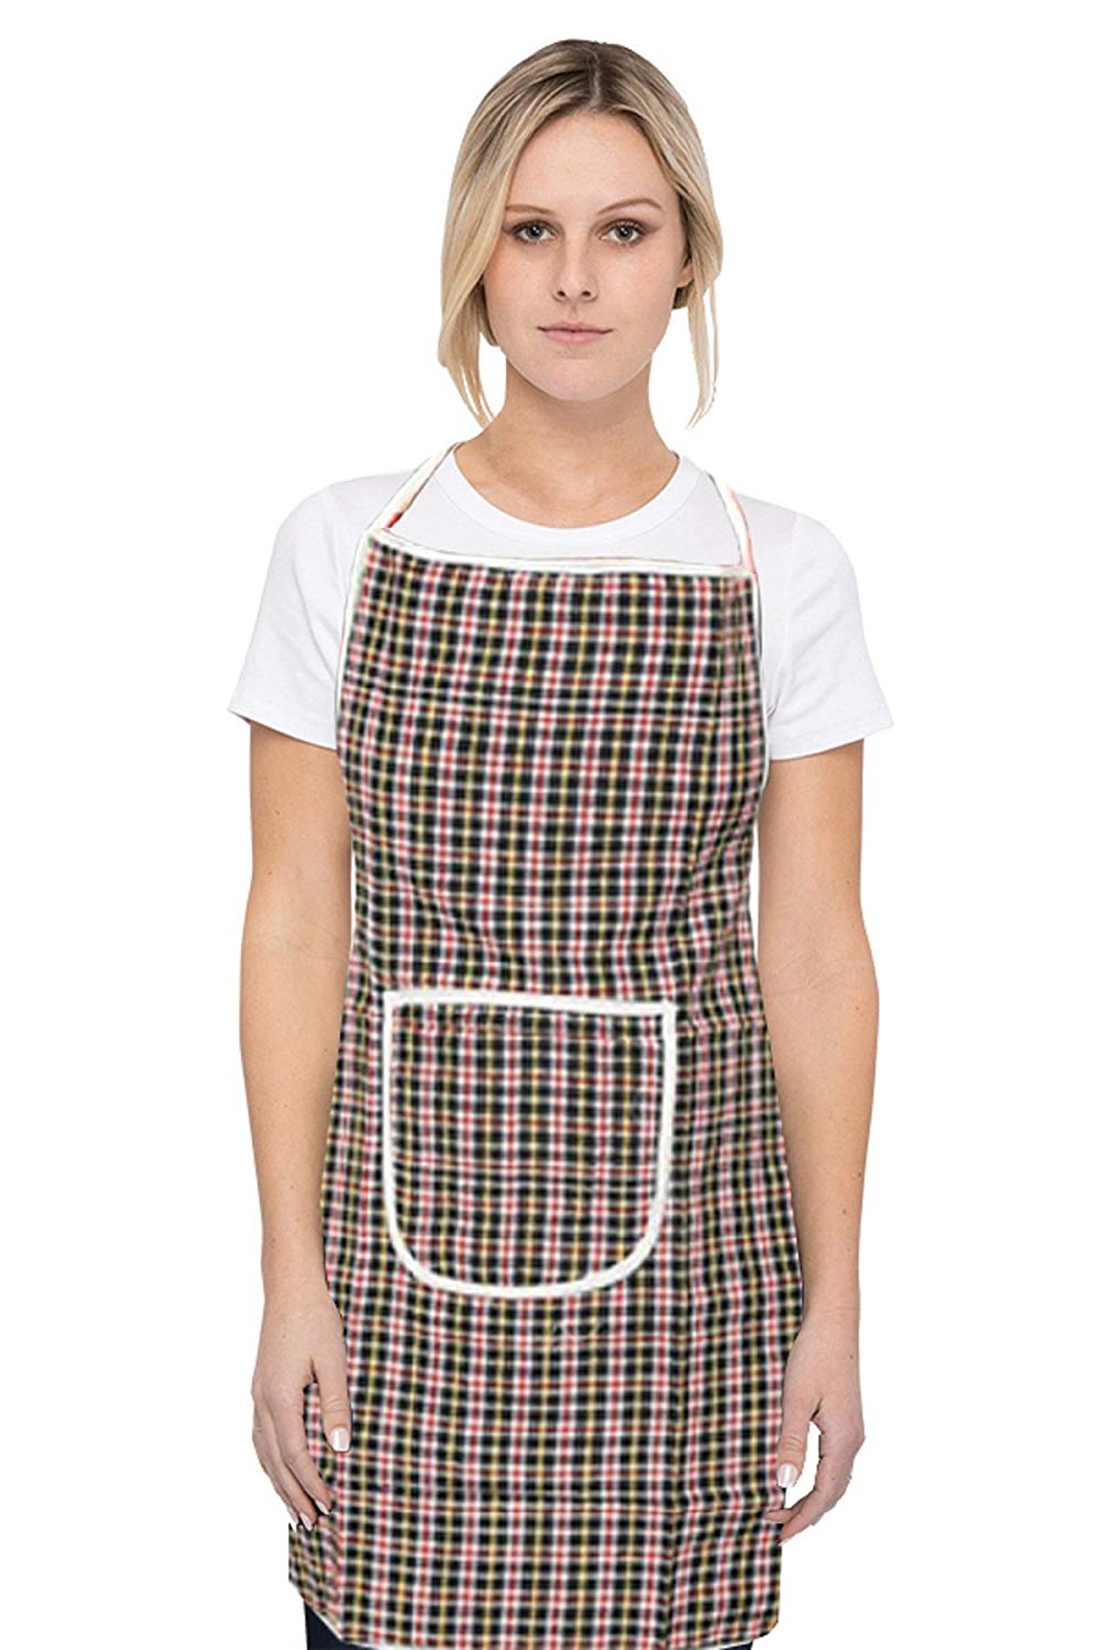 Kuber Industries Checkered Design 3 Pieces Cotton Kitchen Apron with Front Pocket (Multi)-CTKTC32669